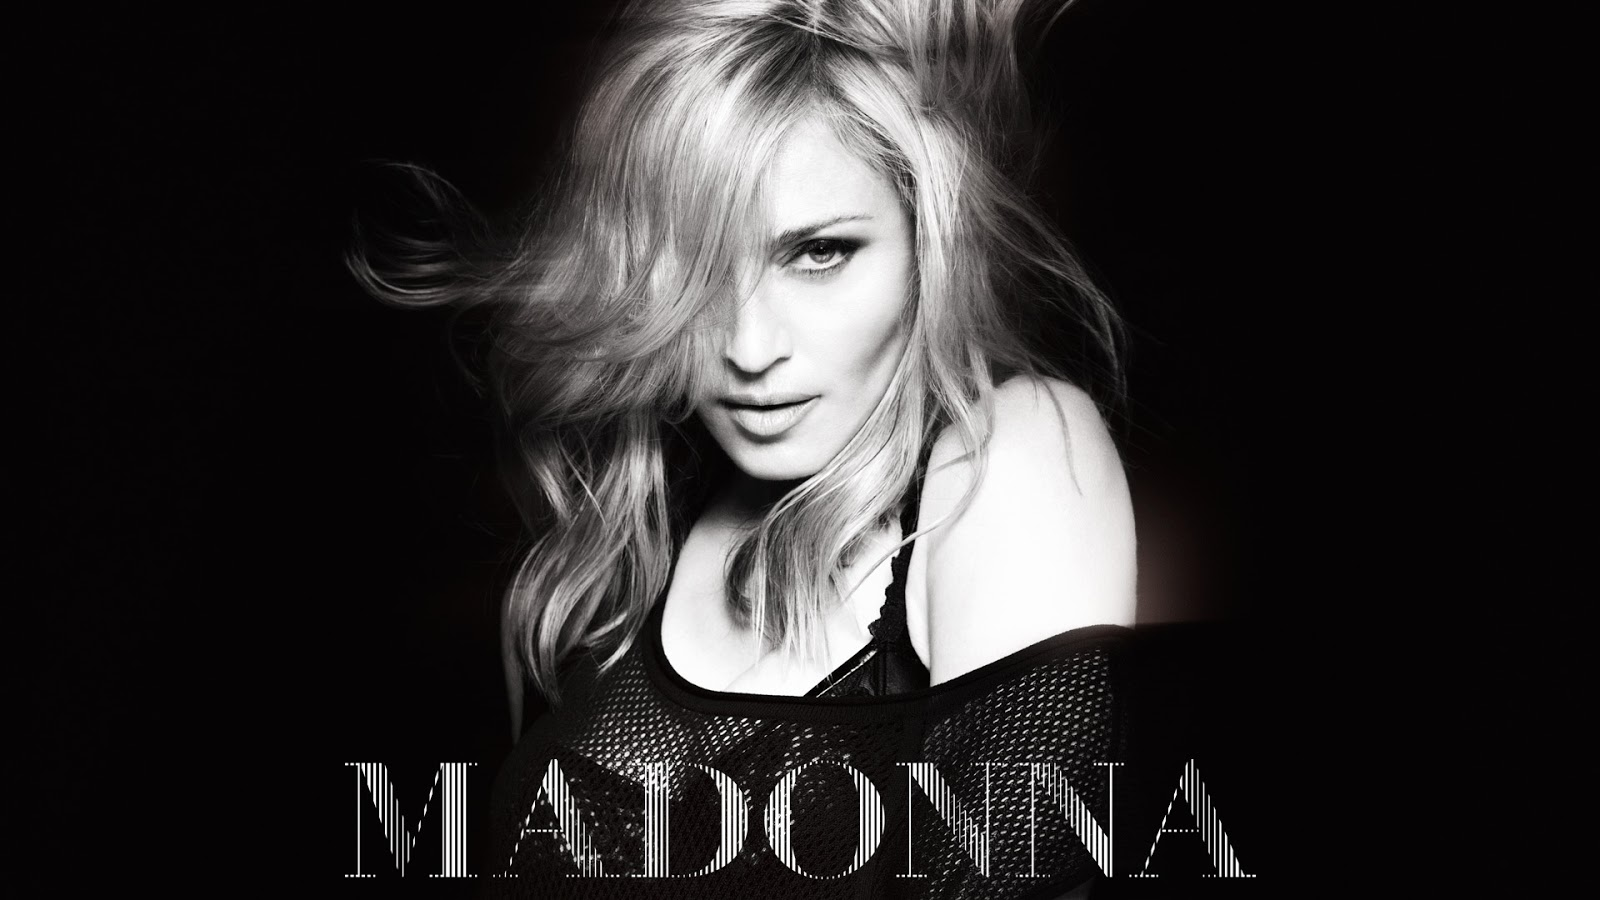 Madonna hd wallpapers - Madonna hd images ...